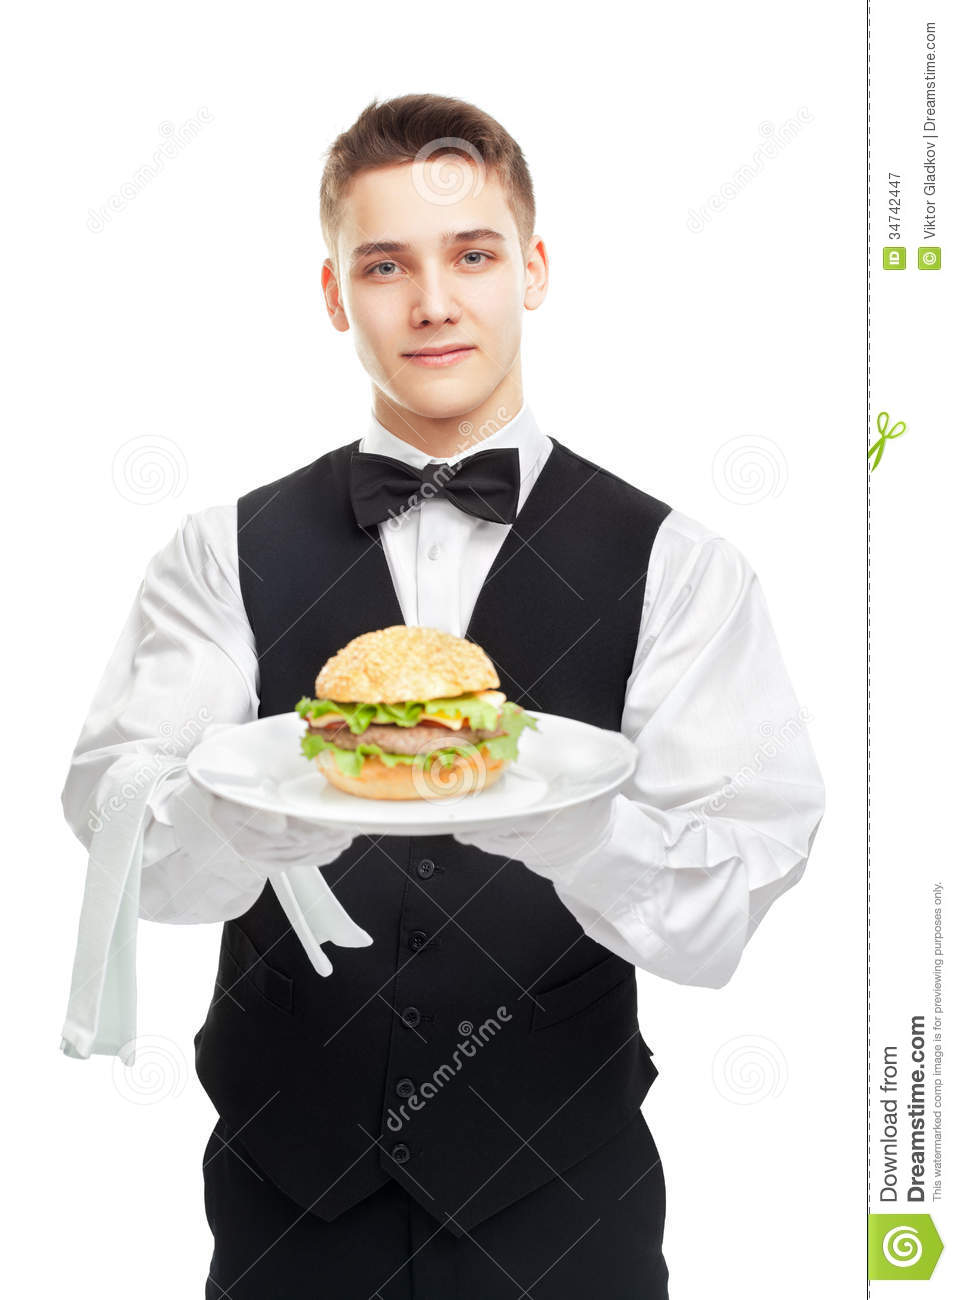 Young Happy Smiling African American Black Teen Girl With: Young Happy Smiling Waiter Holding Hamburger On Plate